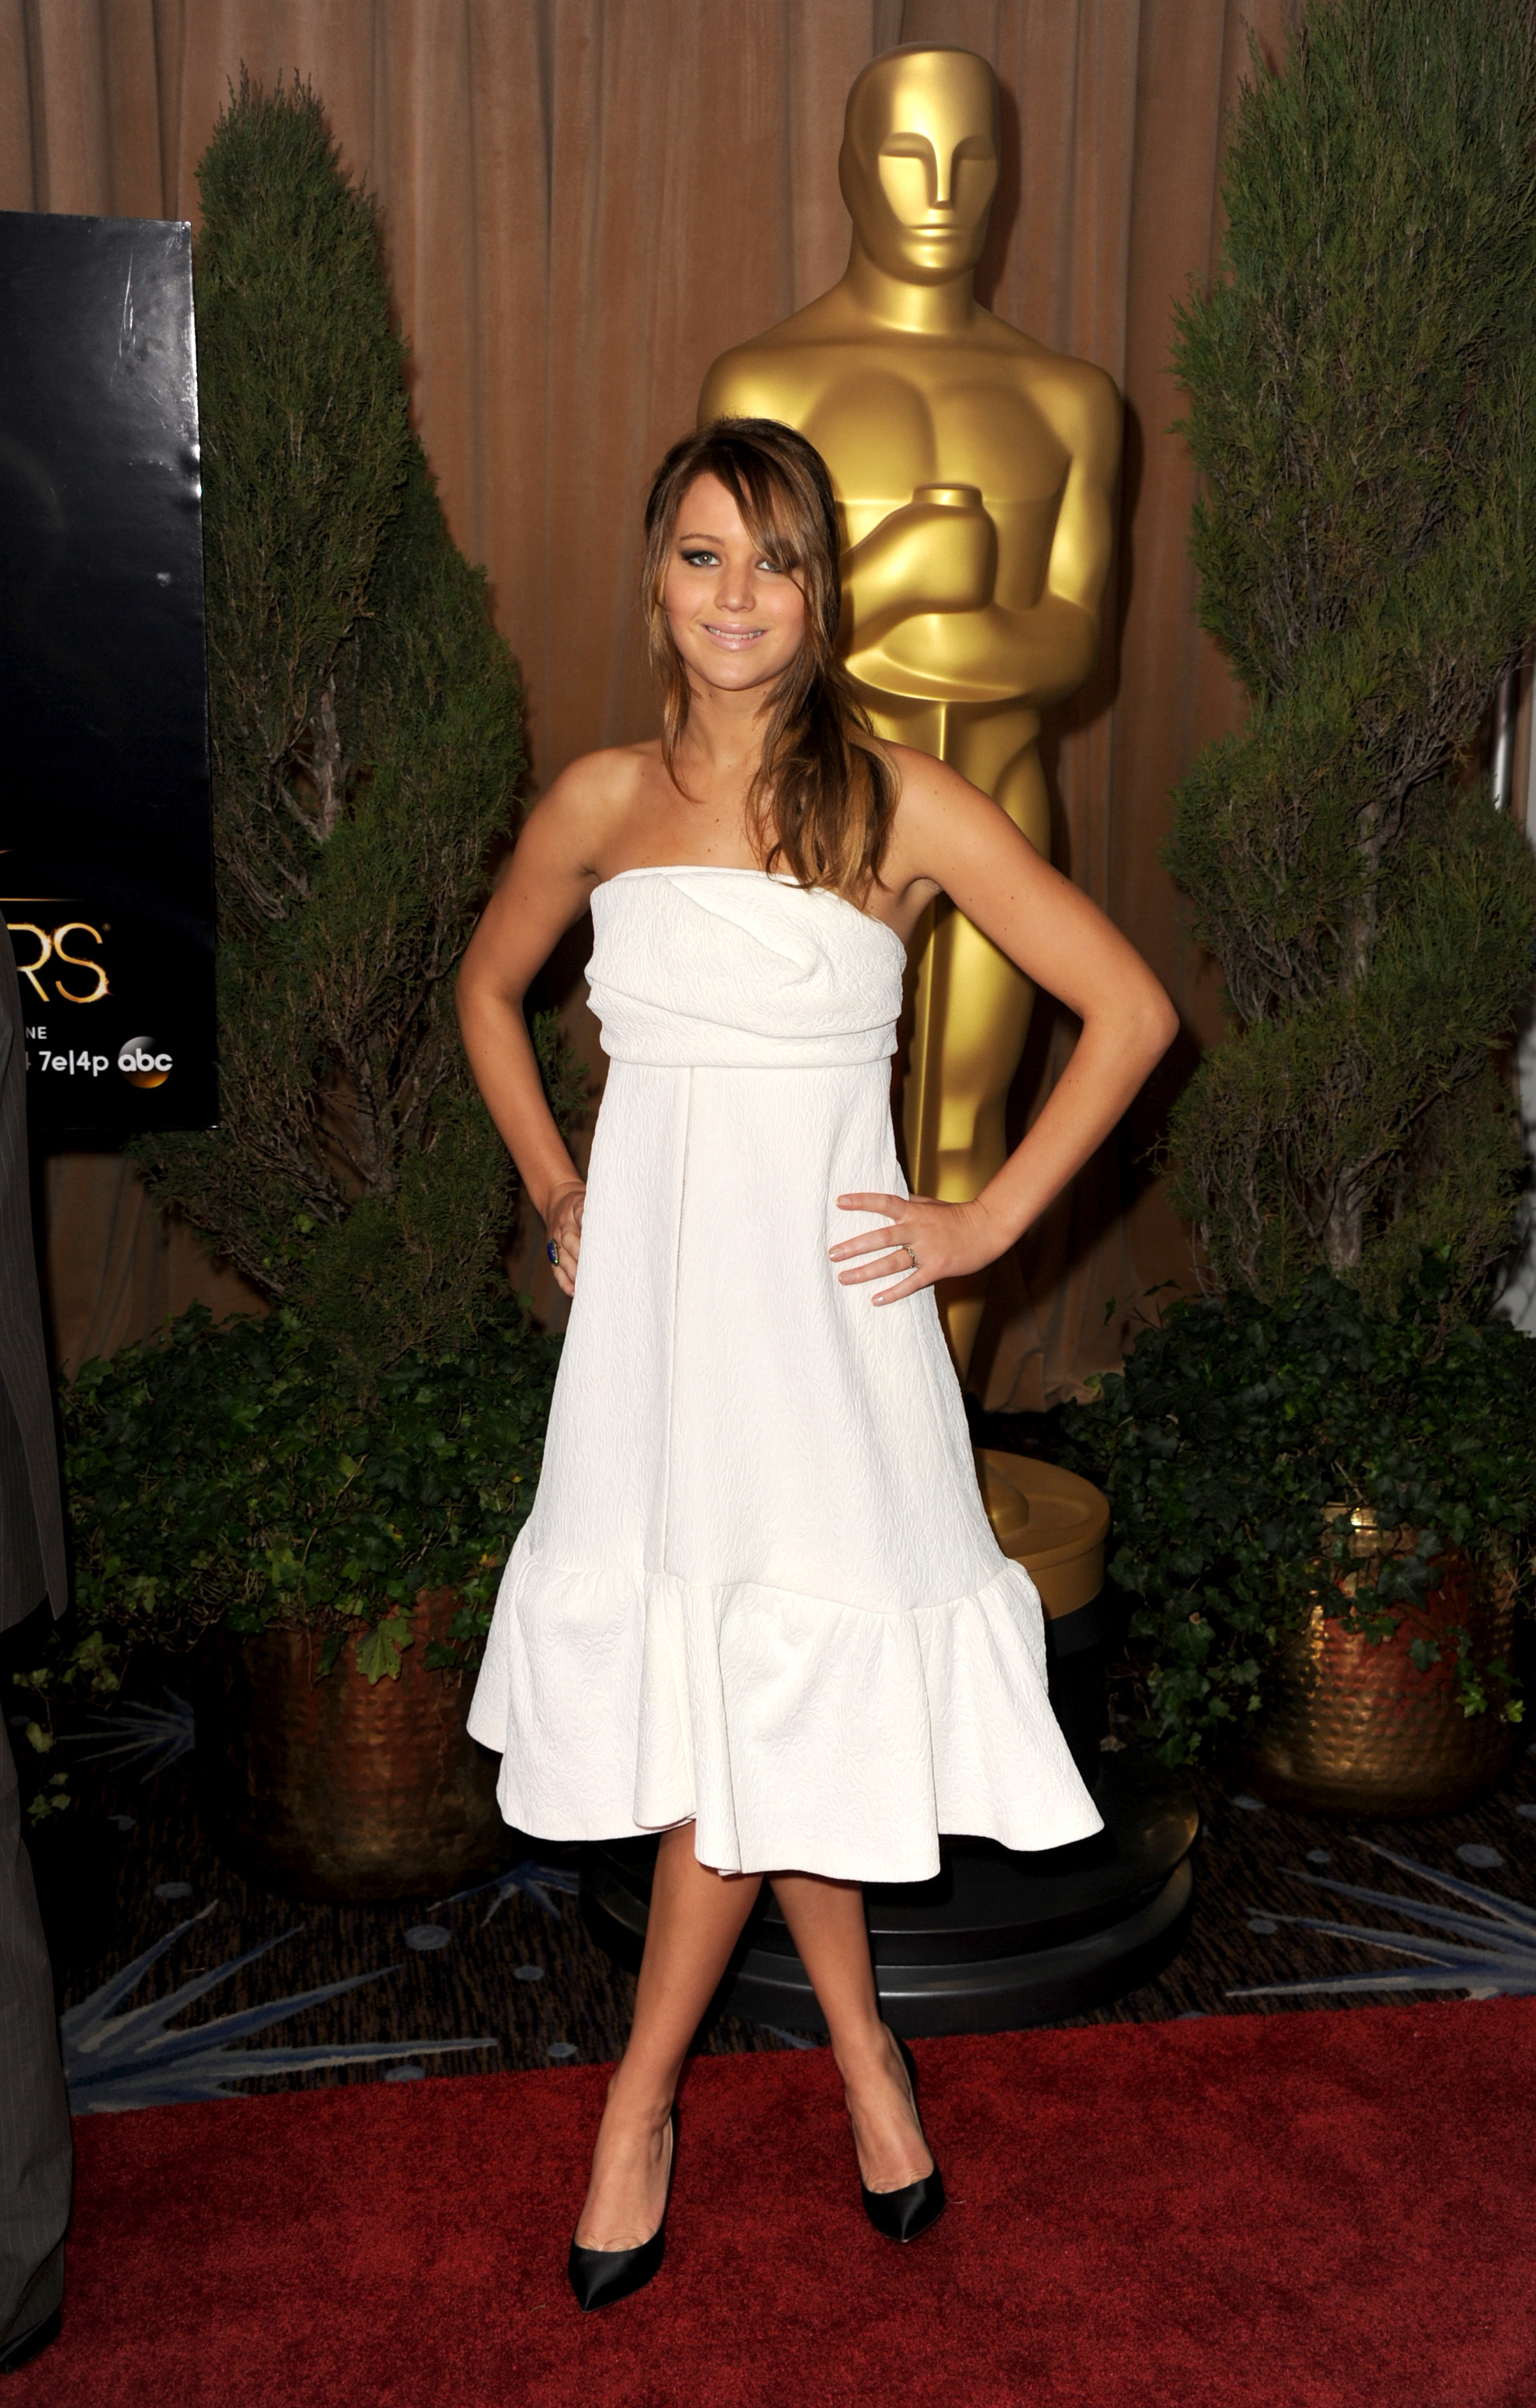 Jennifer Lawrence arrived at the Oscars Luncheon in Beverly Hills in February wearing a white dress.